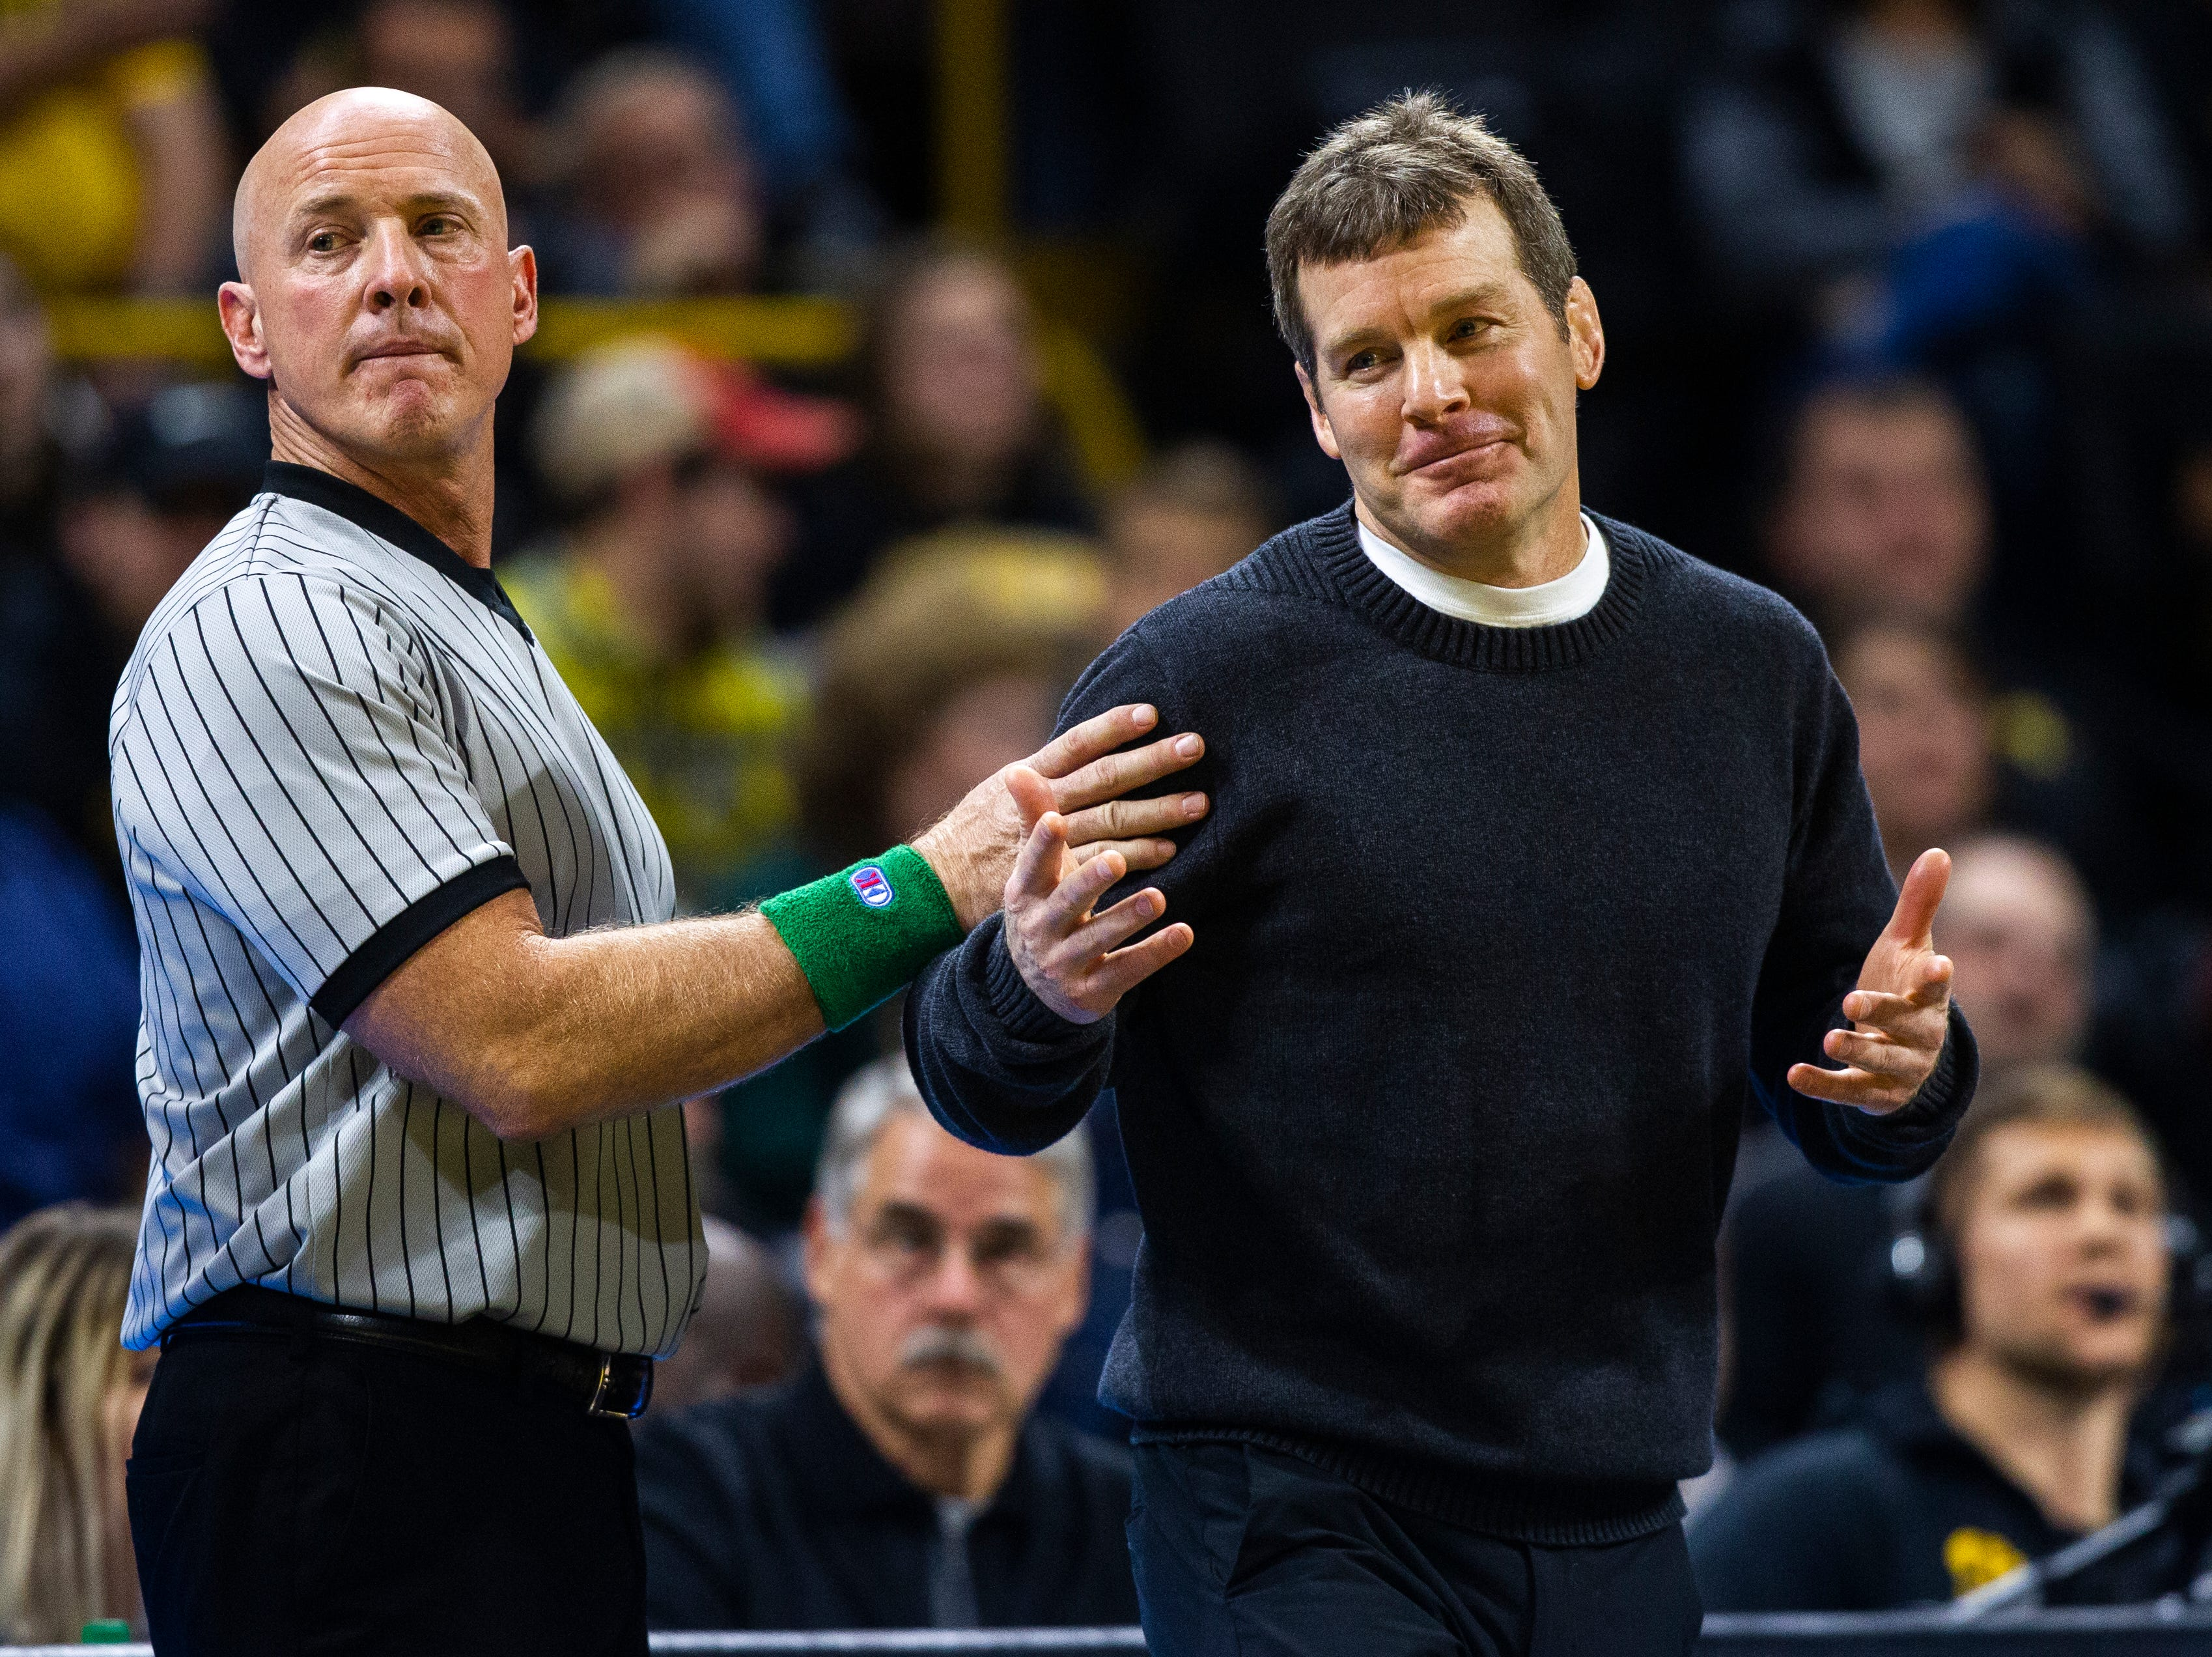 Iowa head coach Tom Brands (right) reacts while talking with officials while calling a challenge during an NCAA wrestling dual on Friday, Nov. 16, 2018, at Carver-Hawkeye Arena in Iowa City.